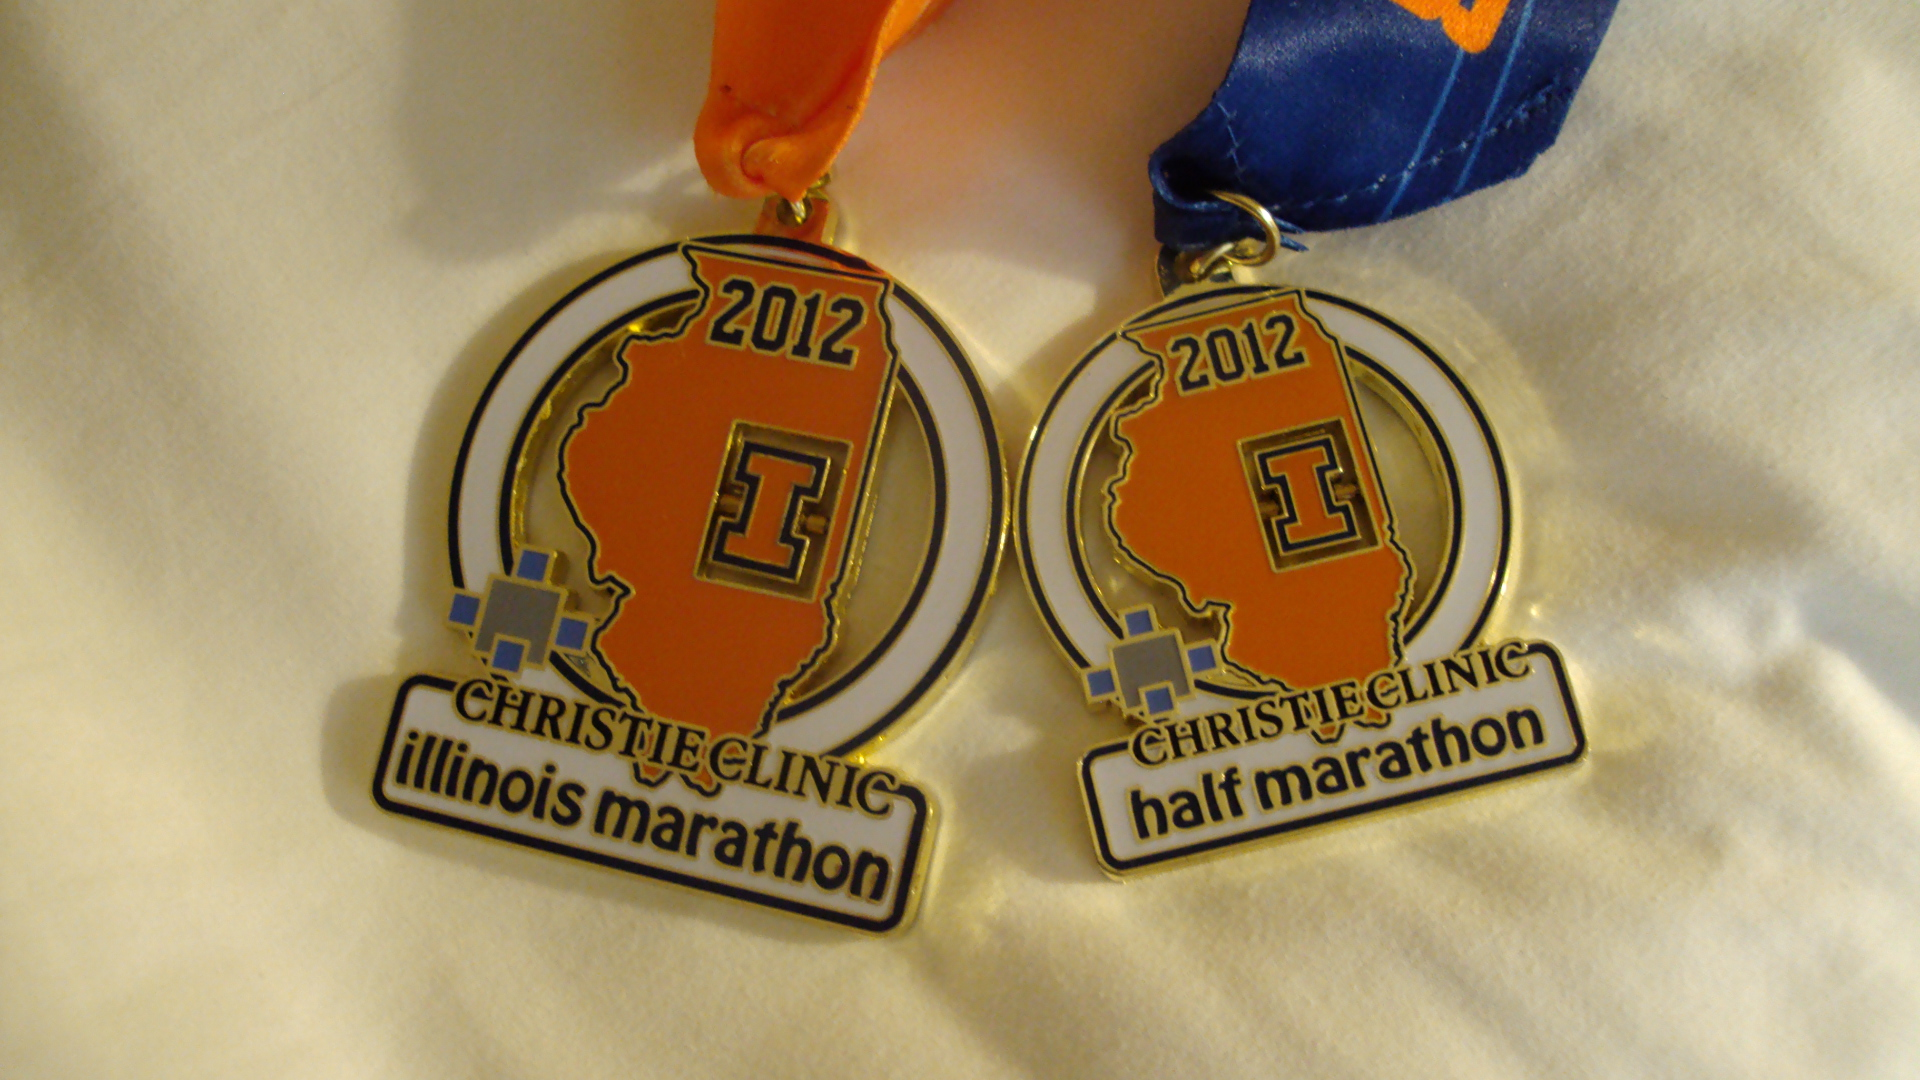 Our medals!!!!